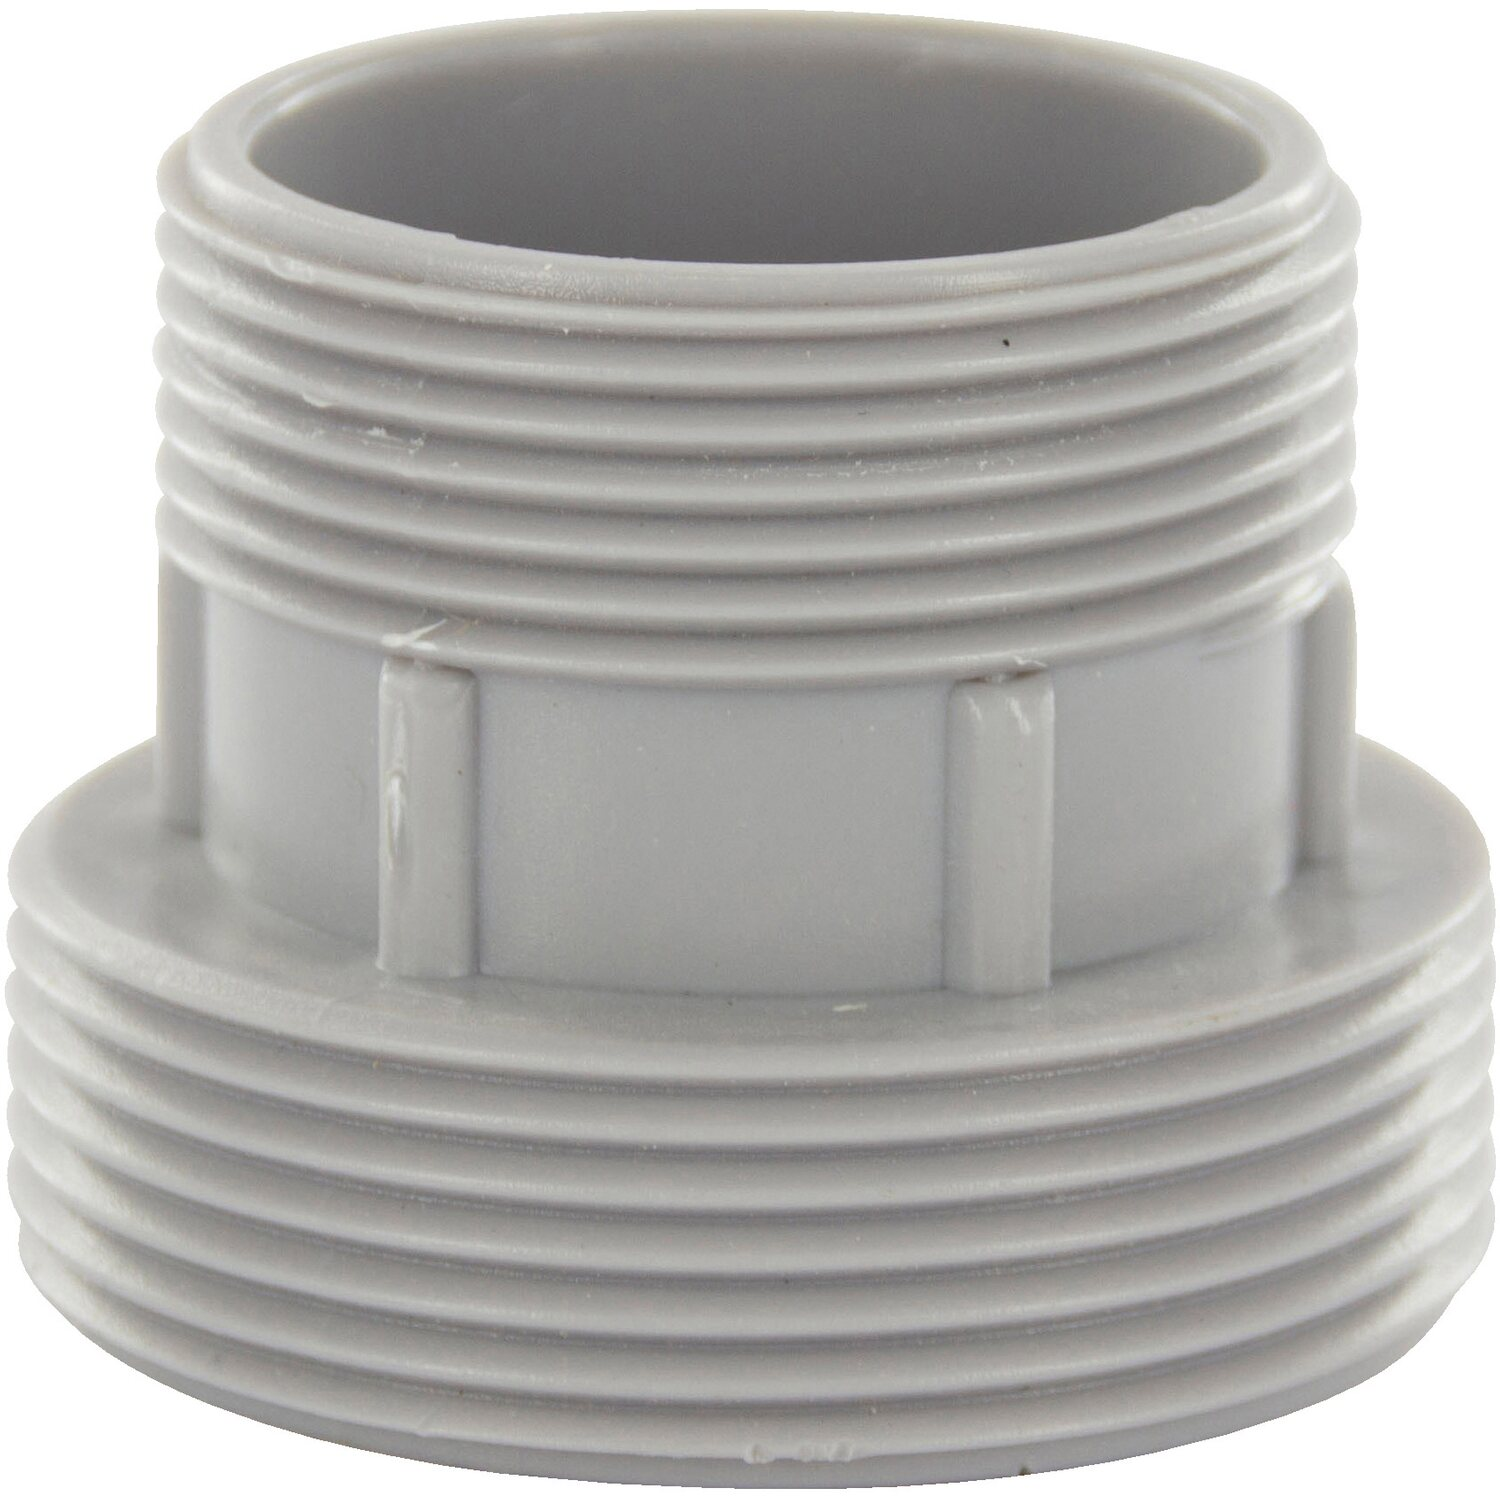 Intex adapter f r intex pools f r 51 mm 2 auf 38 mm 1 for Obi intex pool